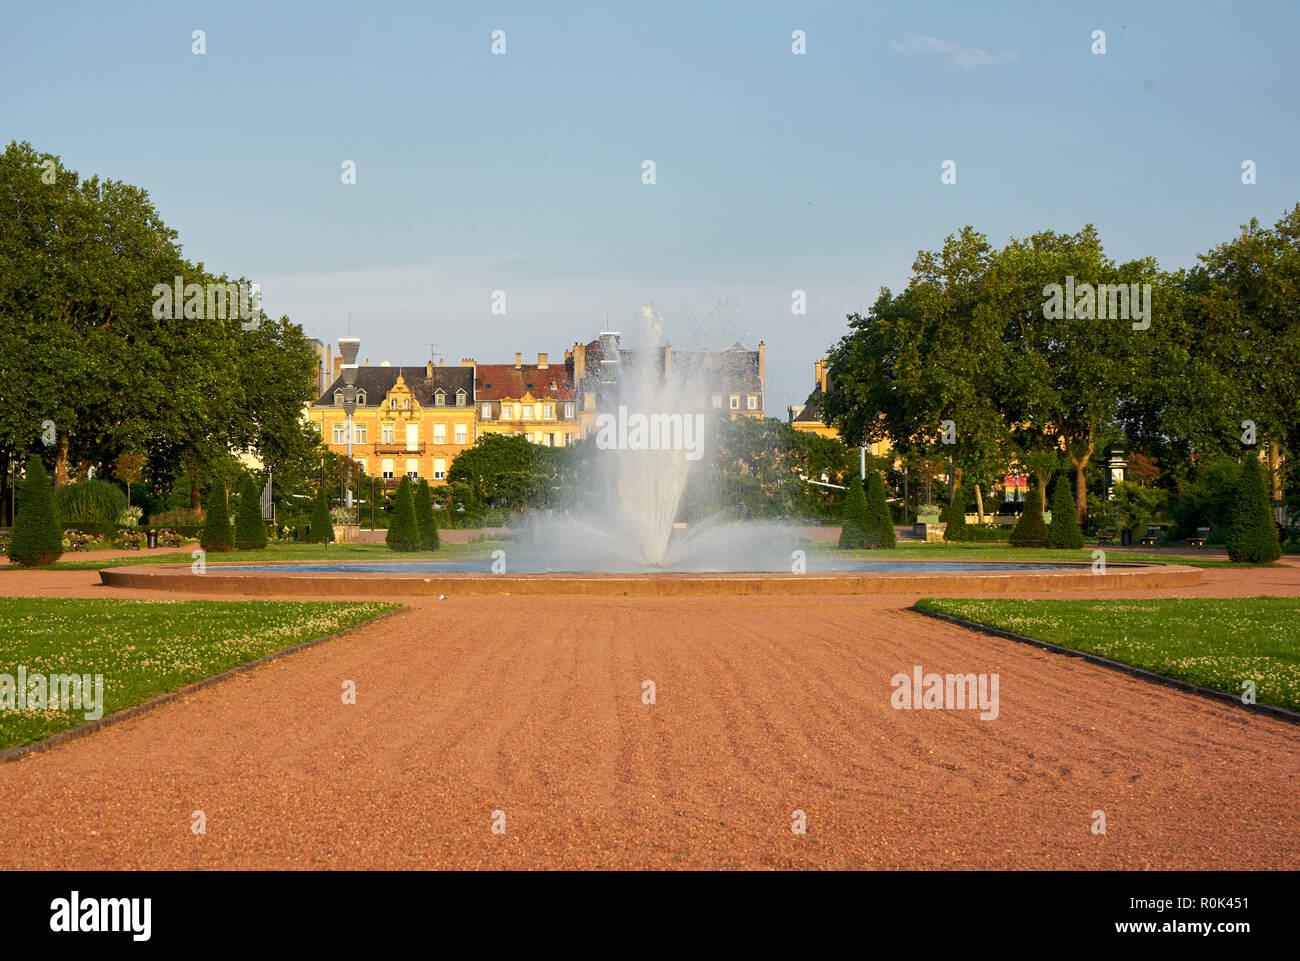 Fountain At Arsenal's Park Metz France - Stock Image